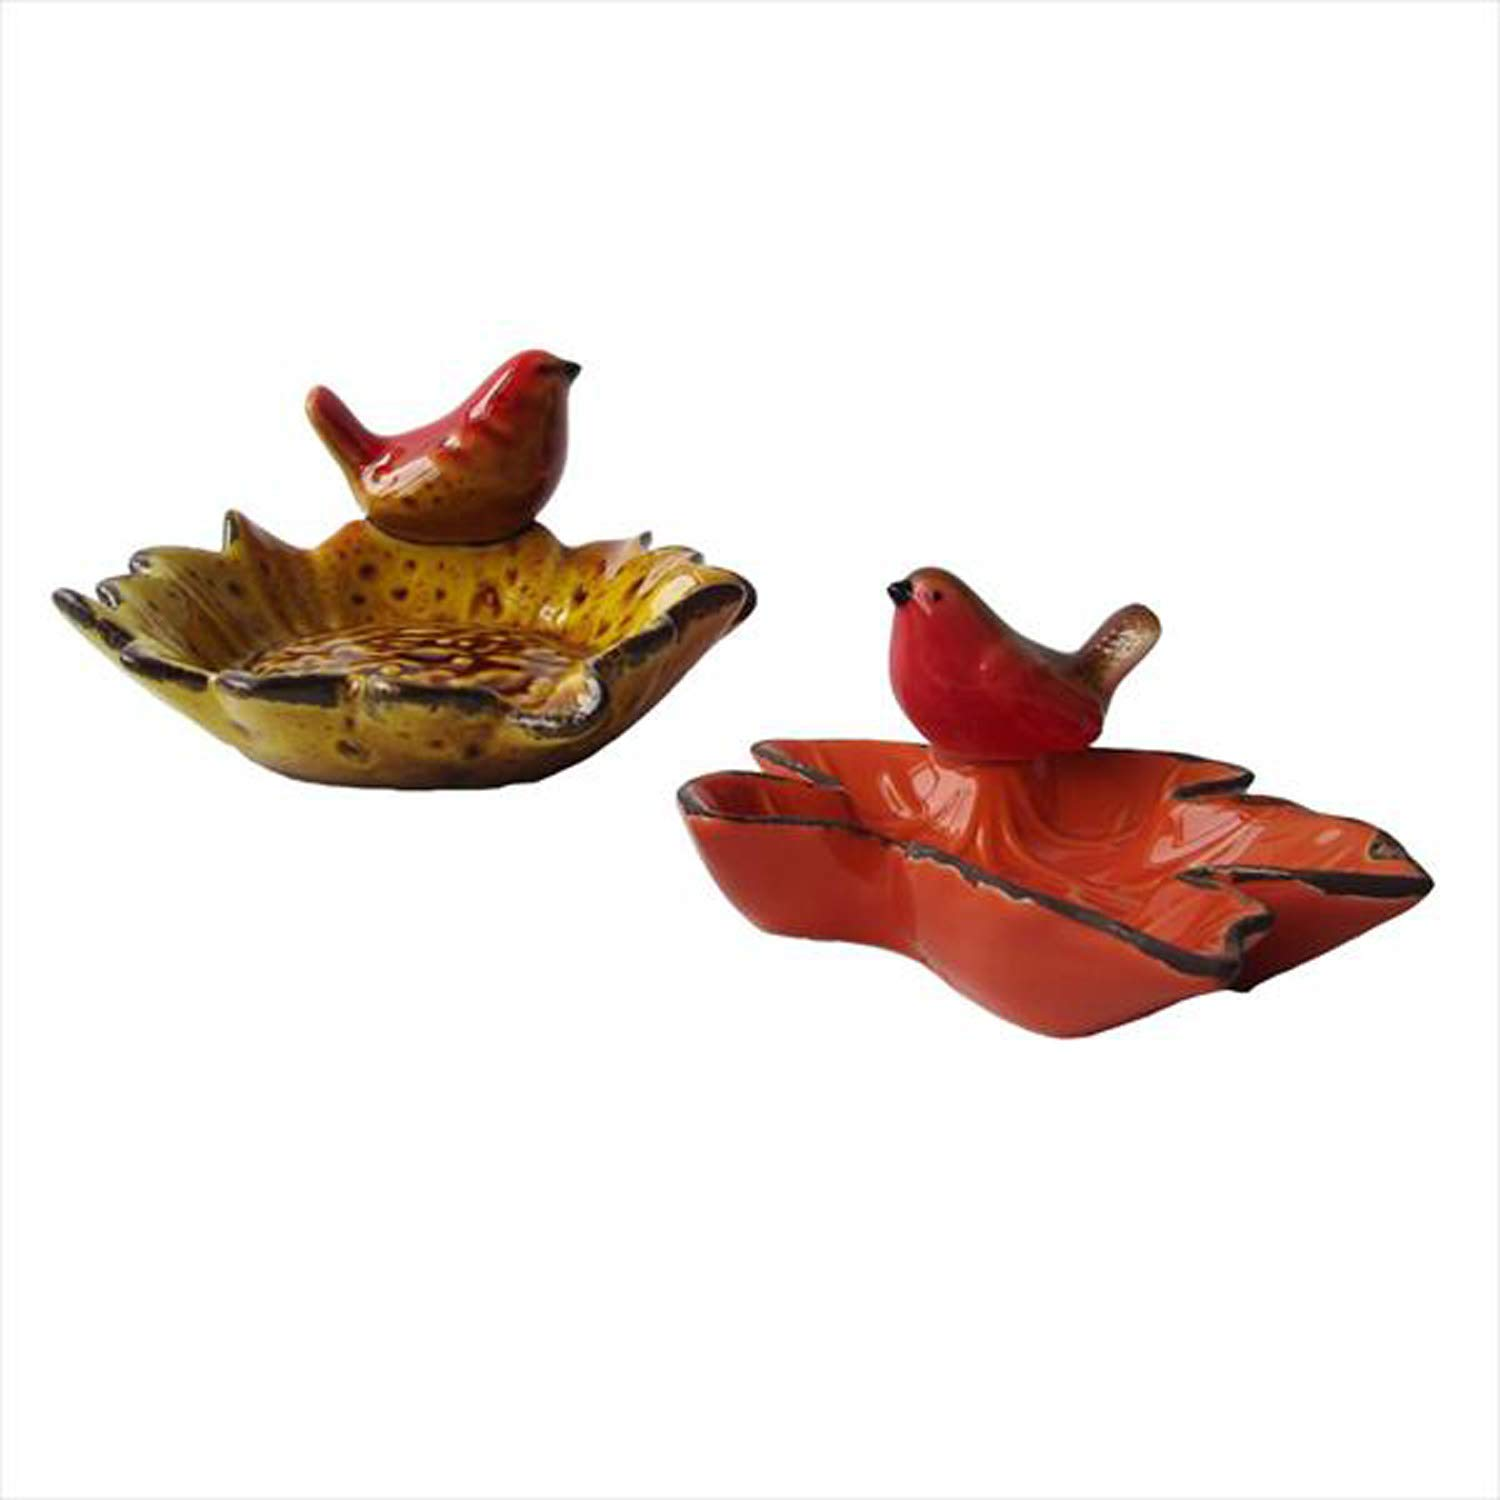 Midwest-CBK Bird Red and Brown 4 x 4 Ceramic Harvest Decorative Dish Tray Set of 2